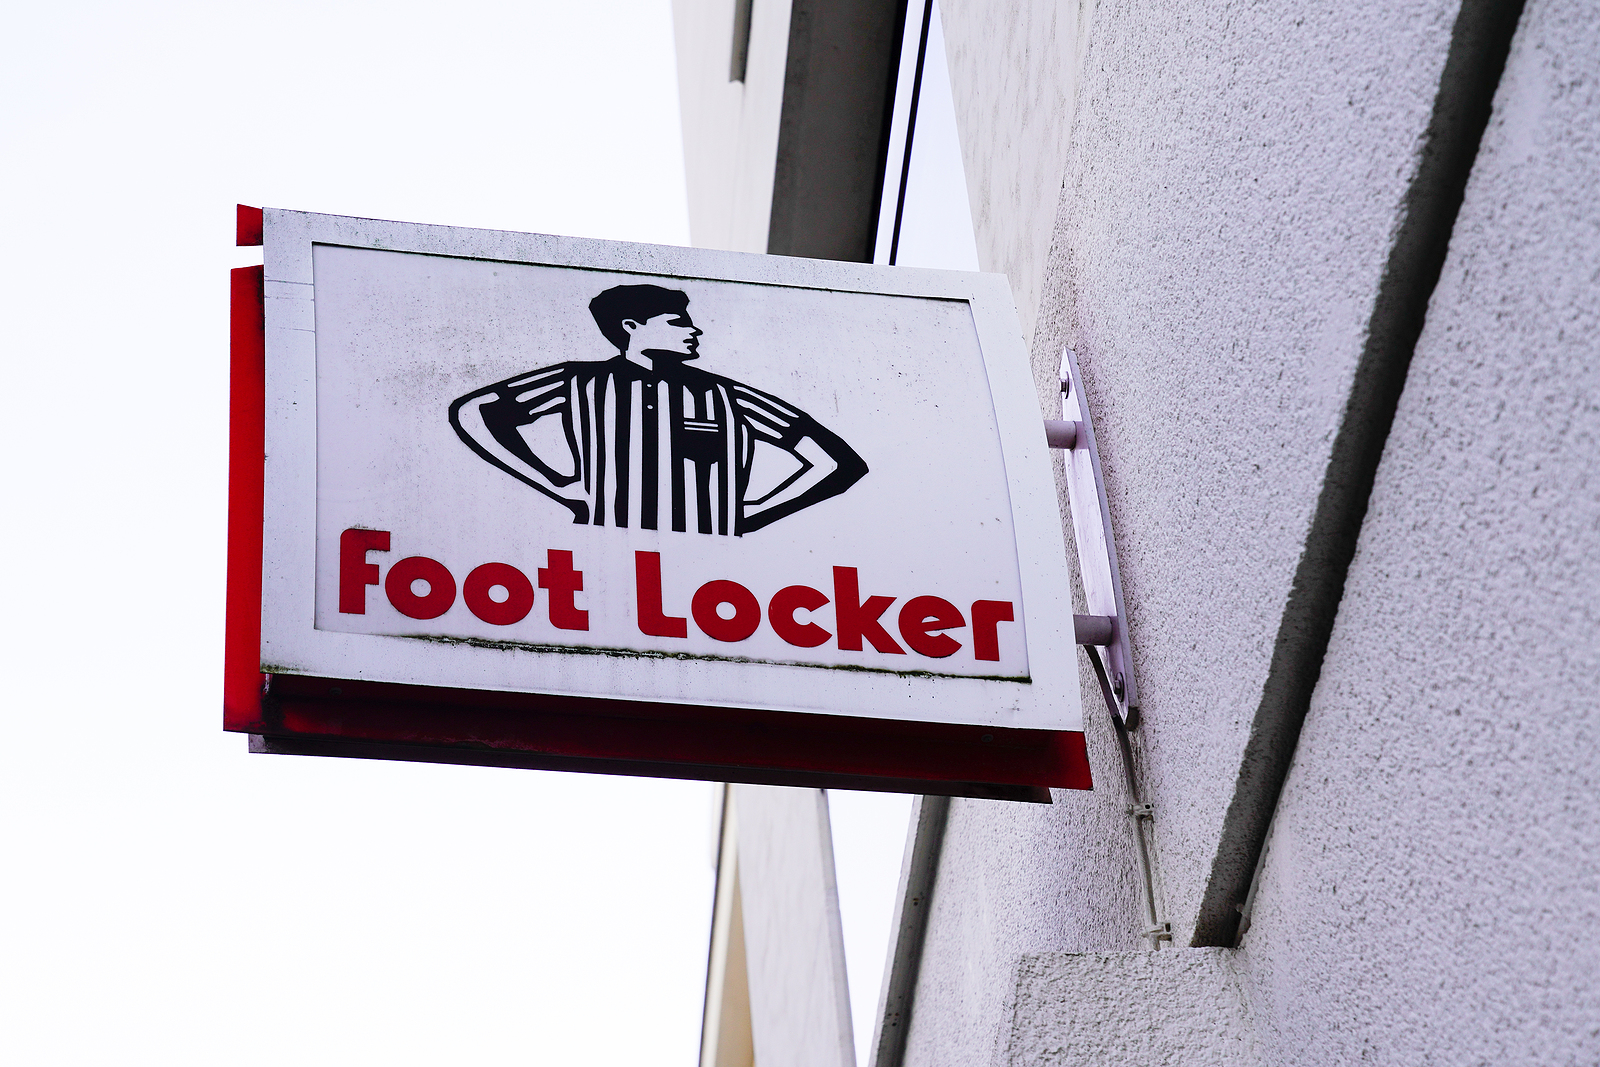 Foot Locker FL stock news and analysis